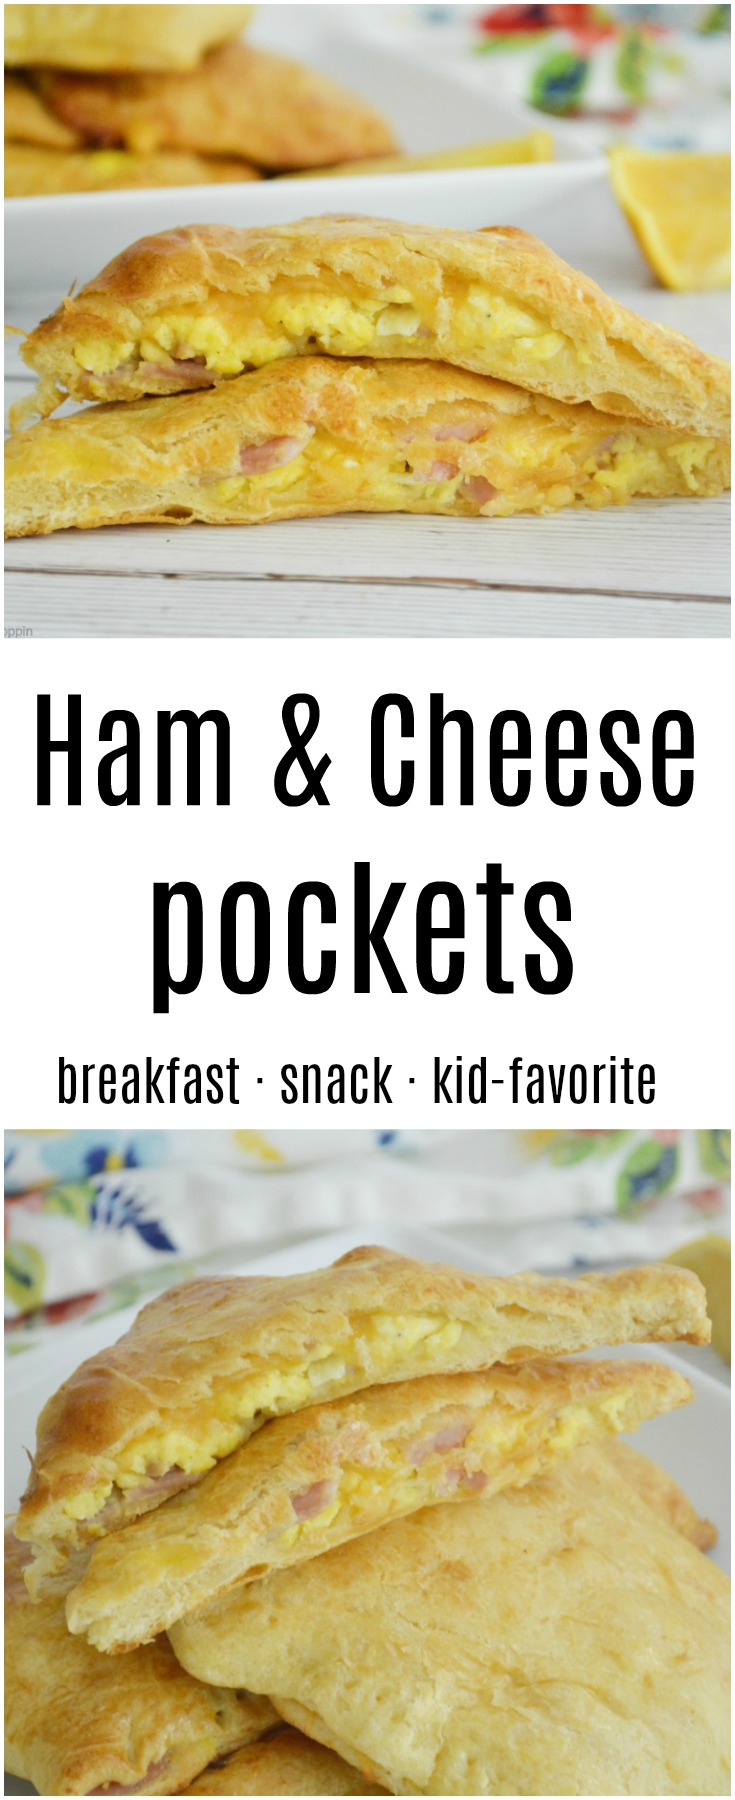 Ham and Cheese Pockets